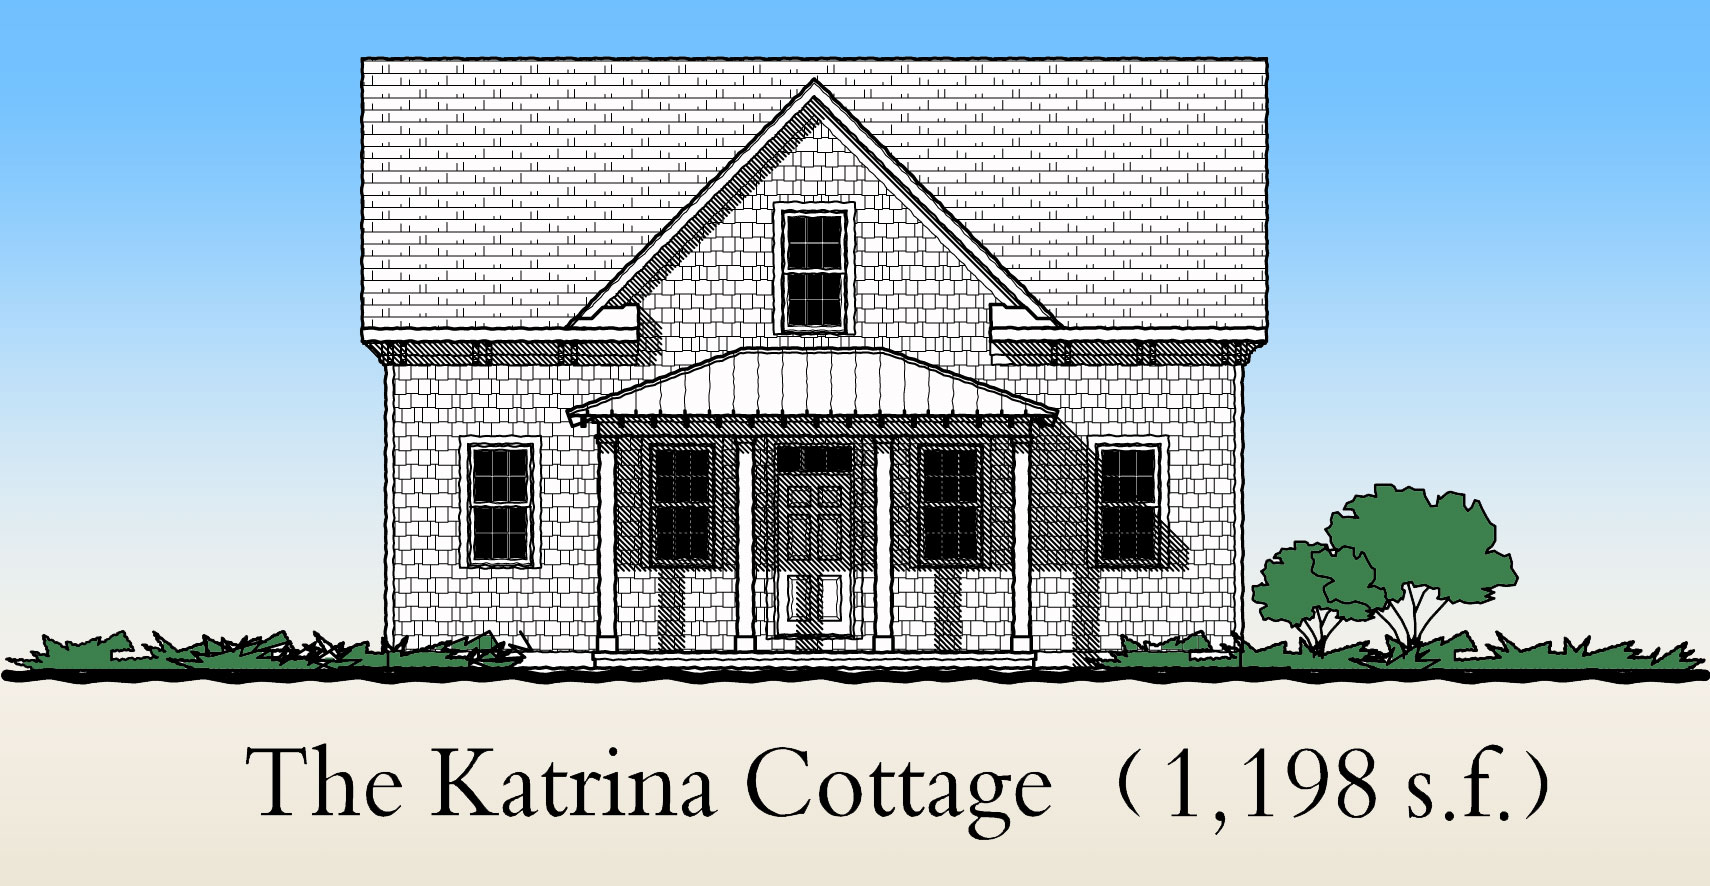 Gmf katrina front color gmf architects house plans for Katrina cottages prices